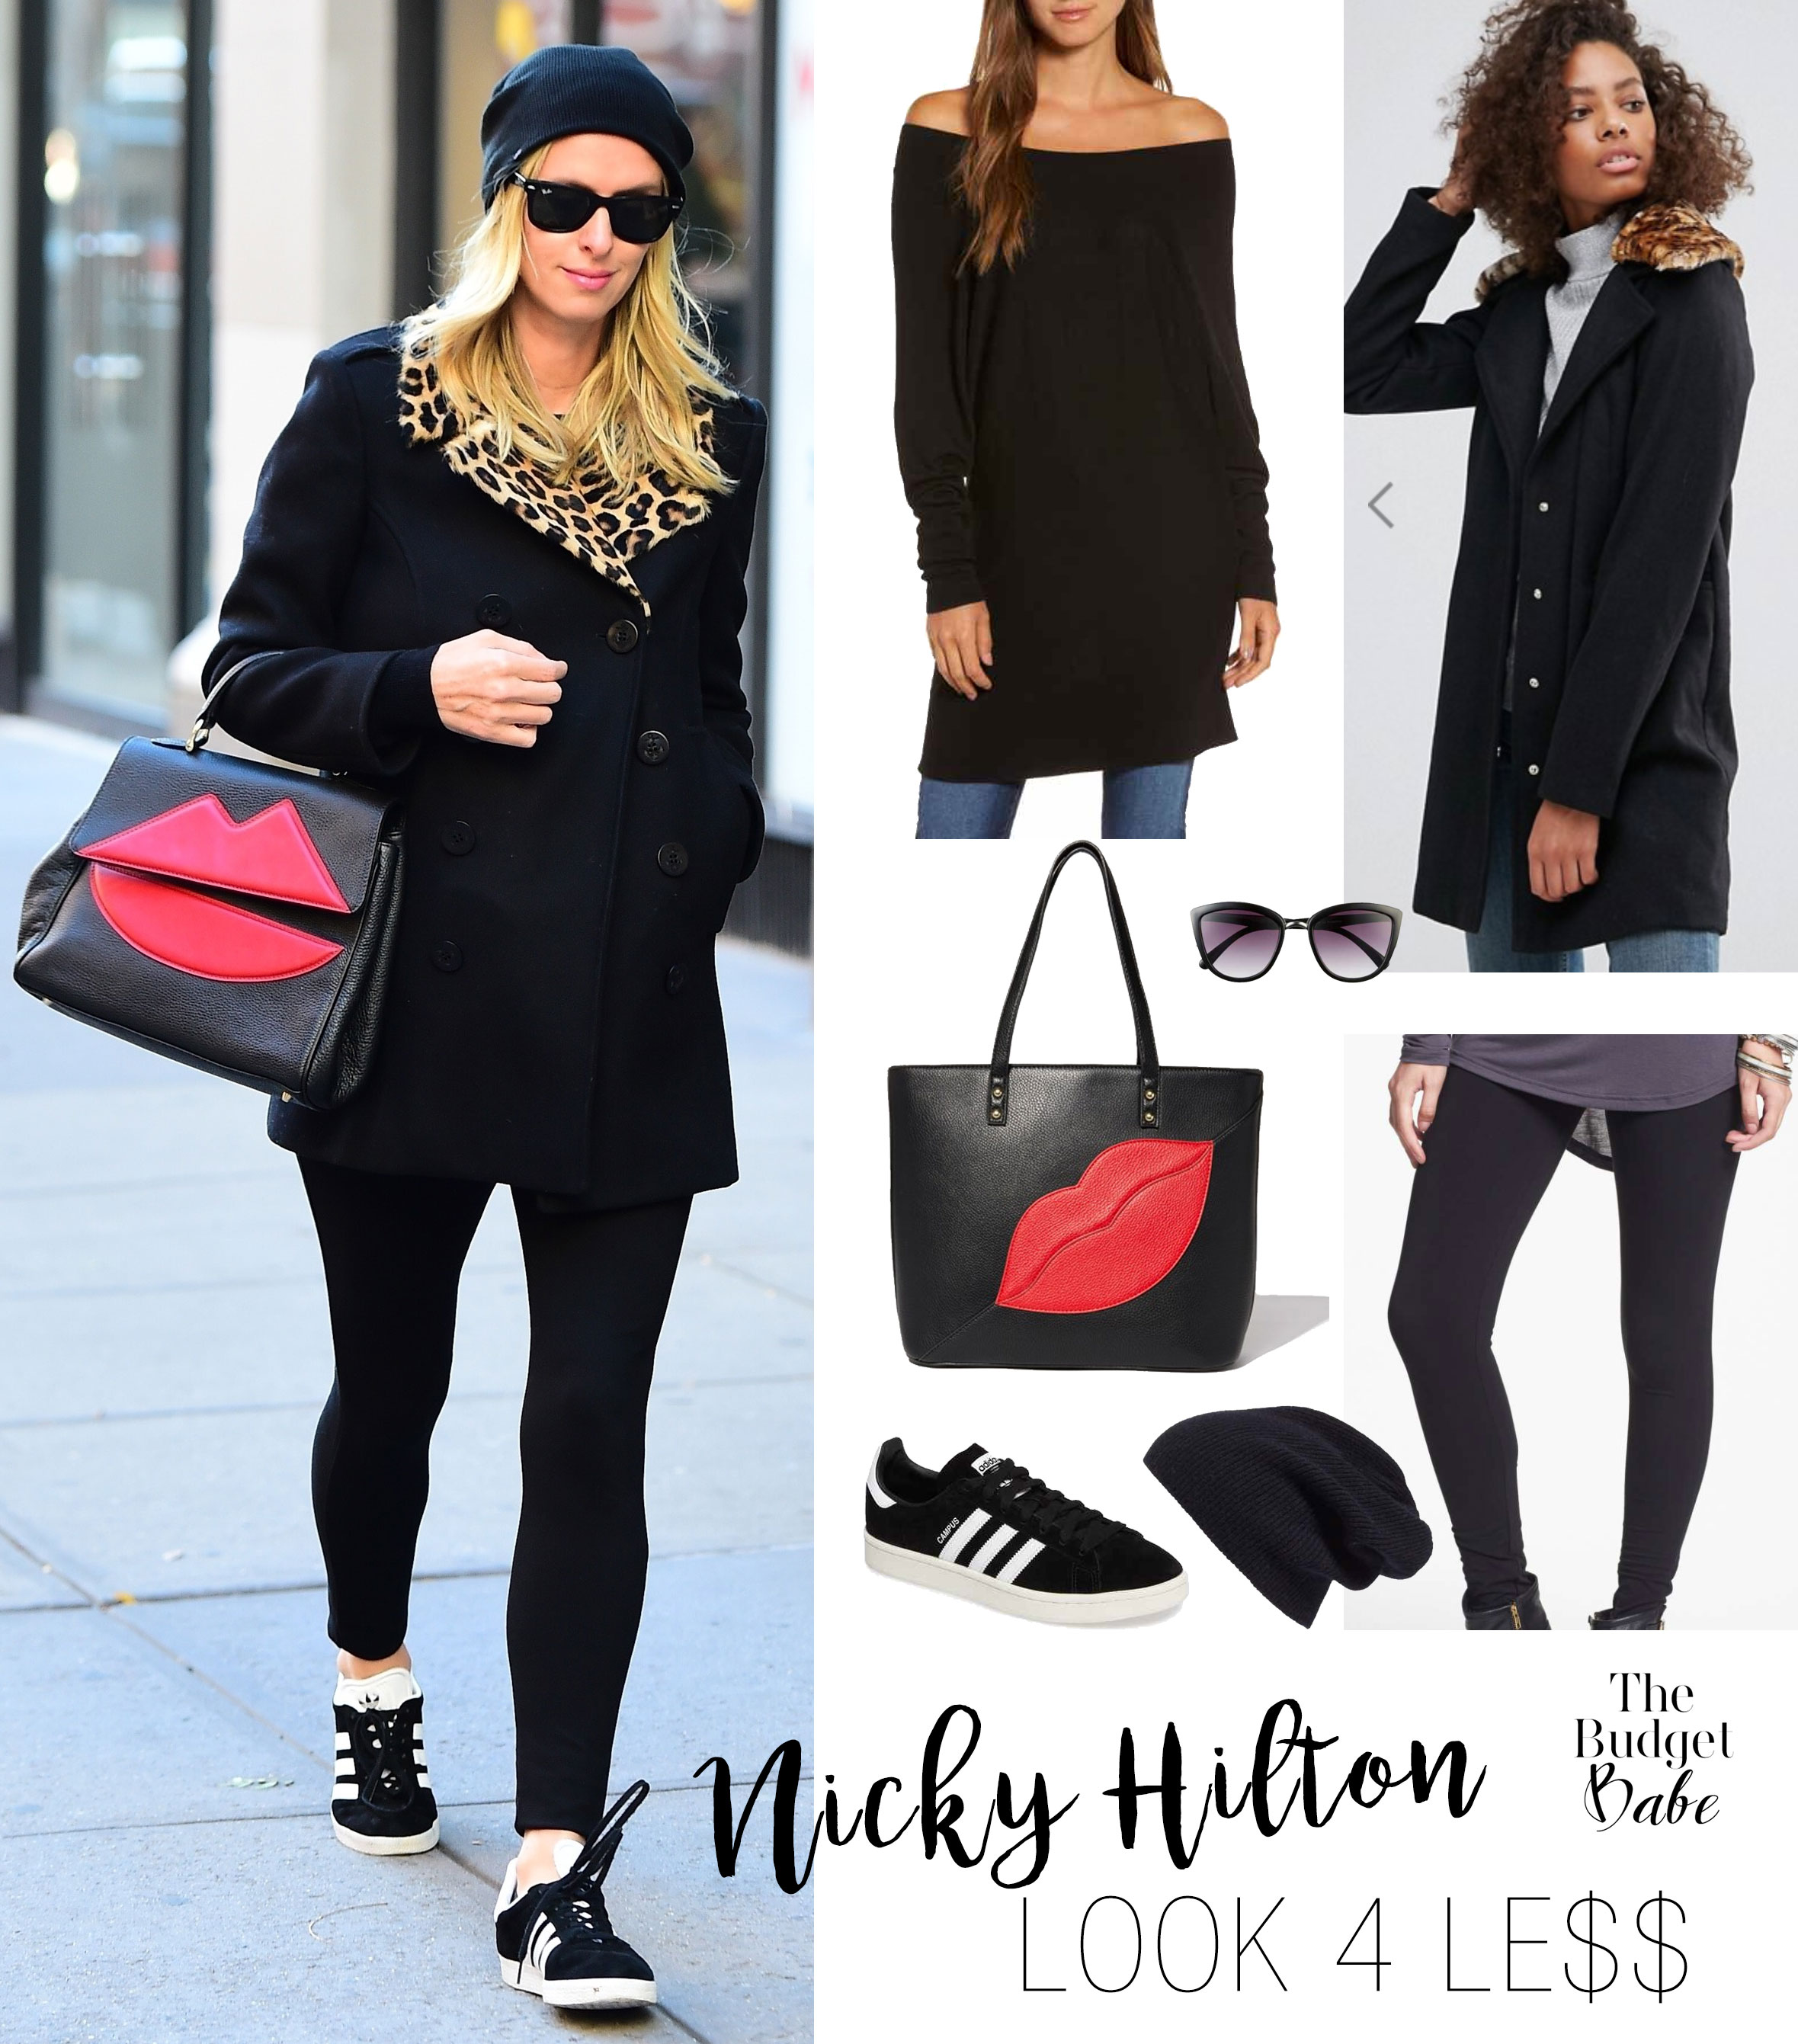 Nicky Hilton wears a black wool coat with leopard faux fur collar and red 'lips' bag by Sara Battaglia.